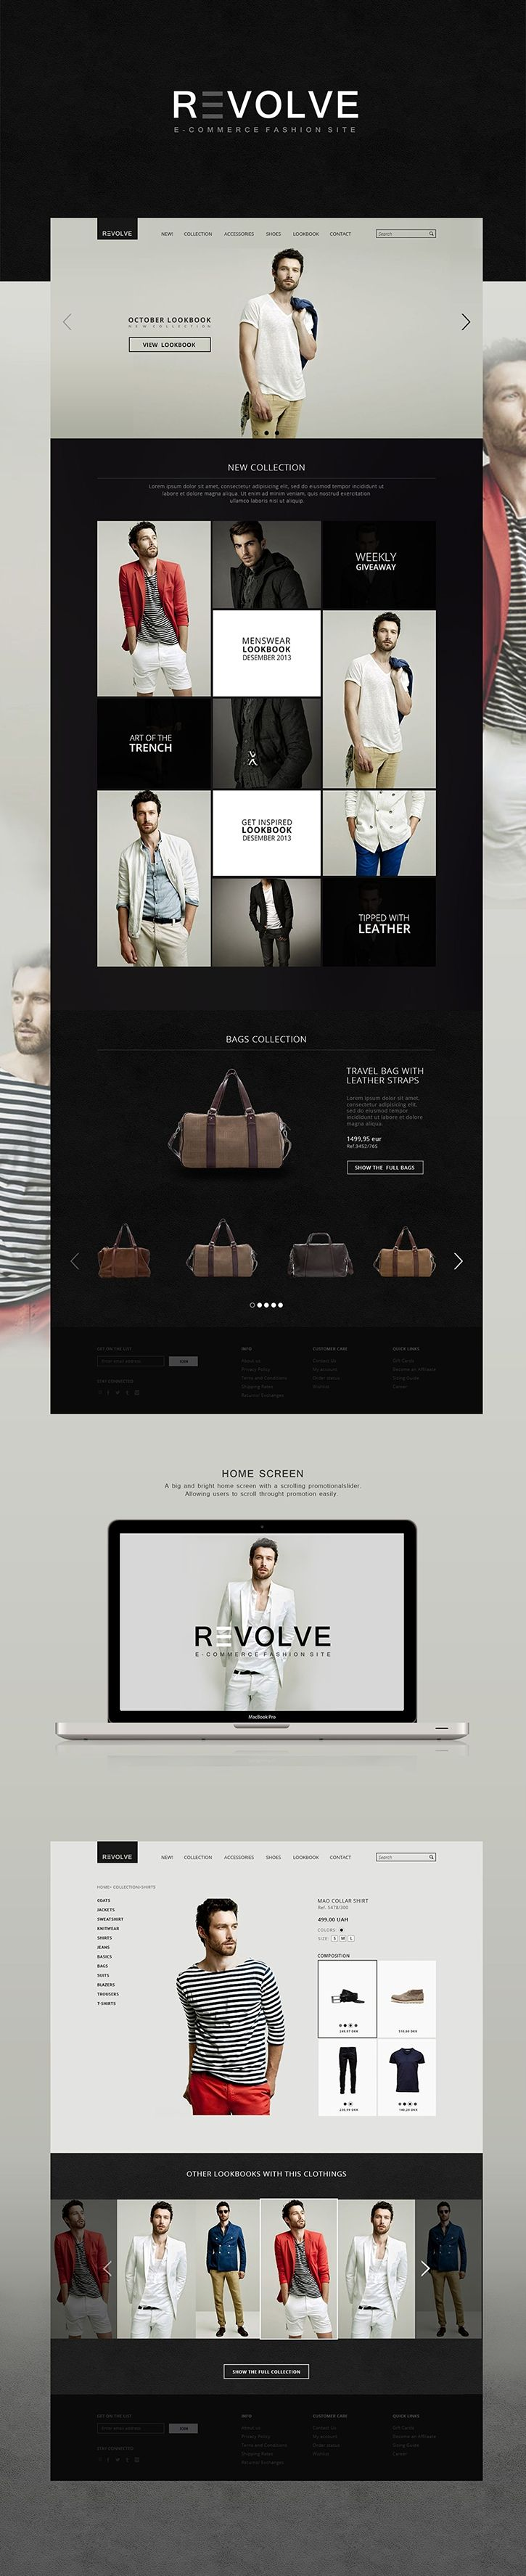 REVOLVE | #webdesign #it #web #design #layout #userinterface #website #webdesign < repinned by www.BlickeDeeler.de | Take a look at www.WebsiteDesign-Hamburg.de